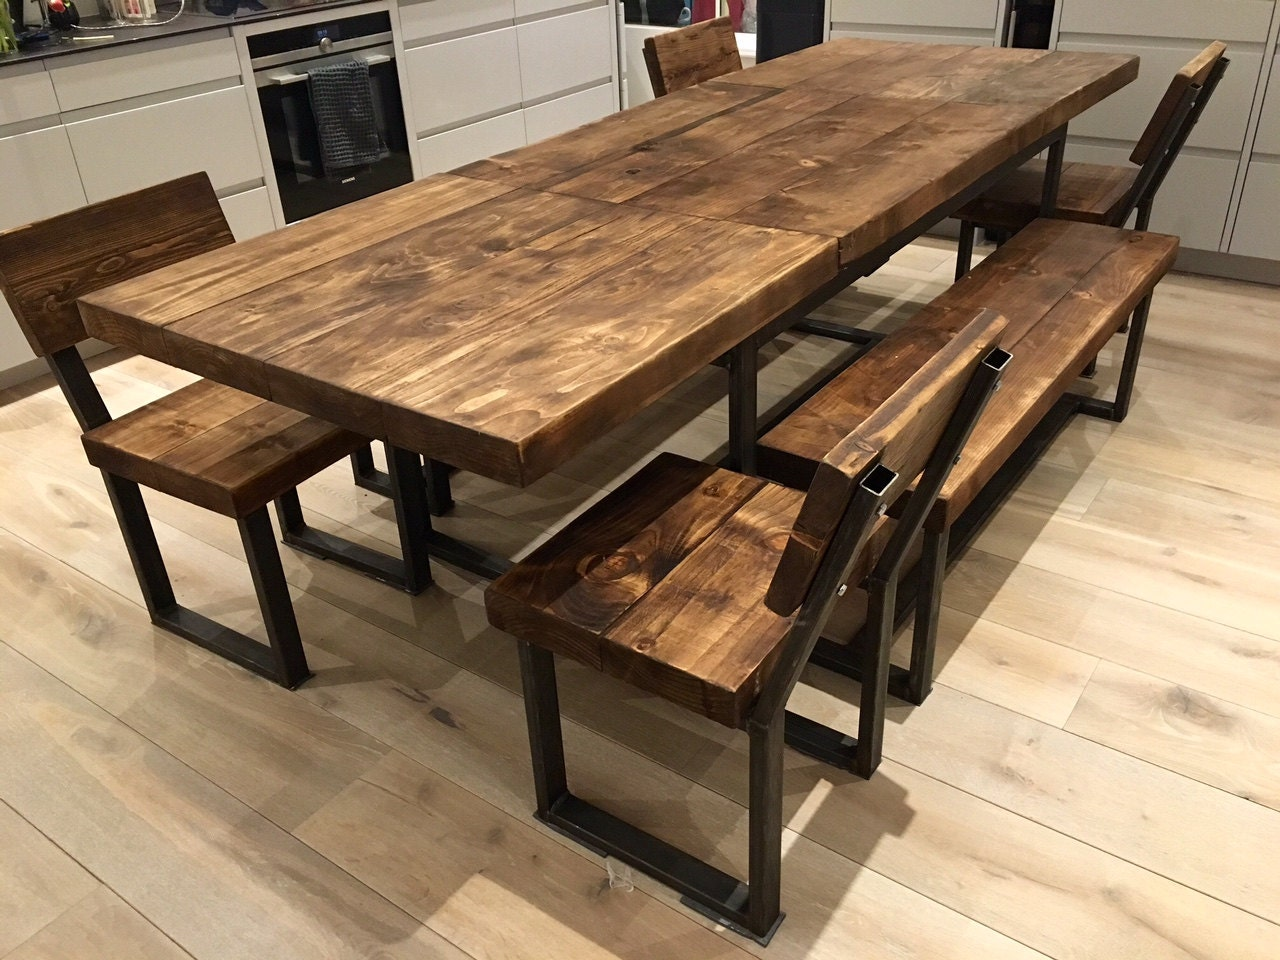 reclaimed industrial chic 6 10 seater extending dining table. Black Bedroom Furniture Sets. Home Design Ideas